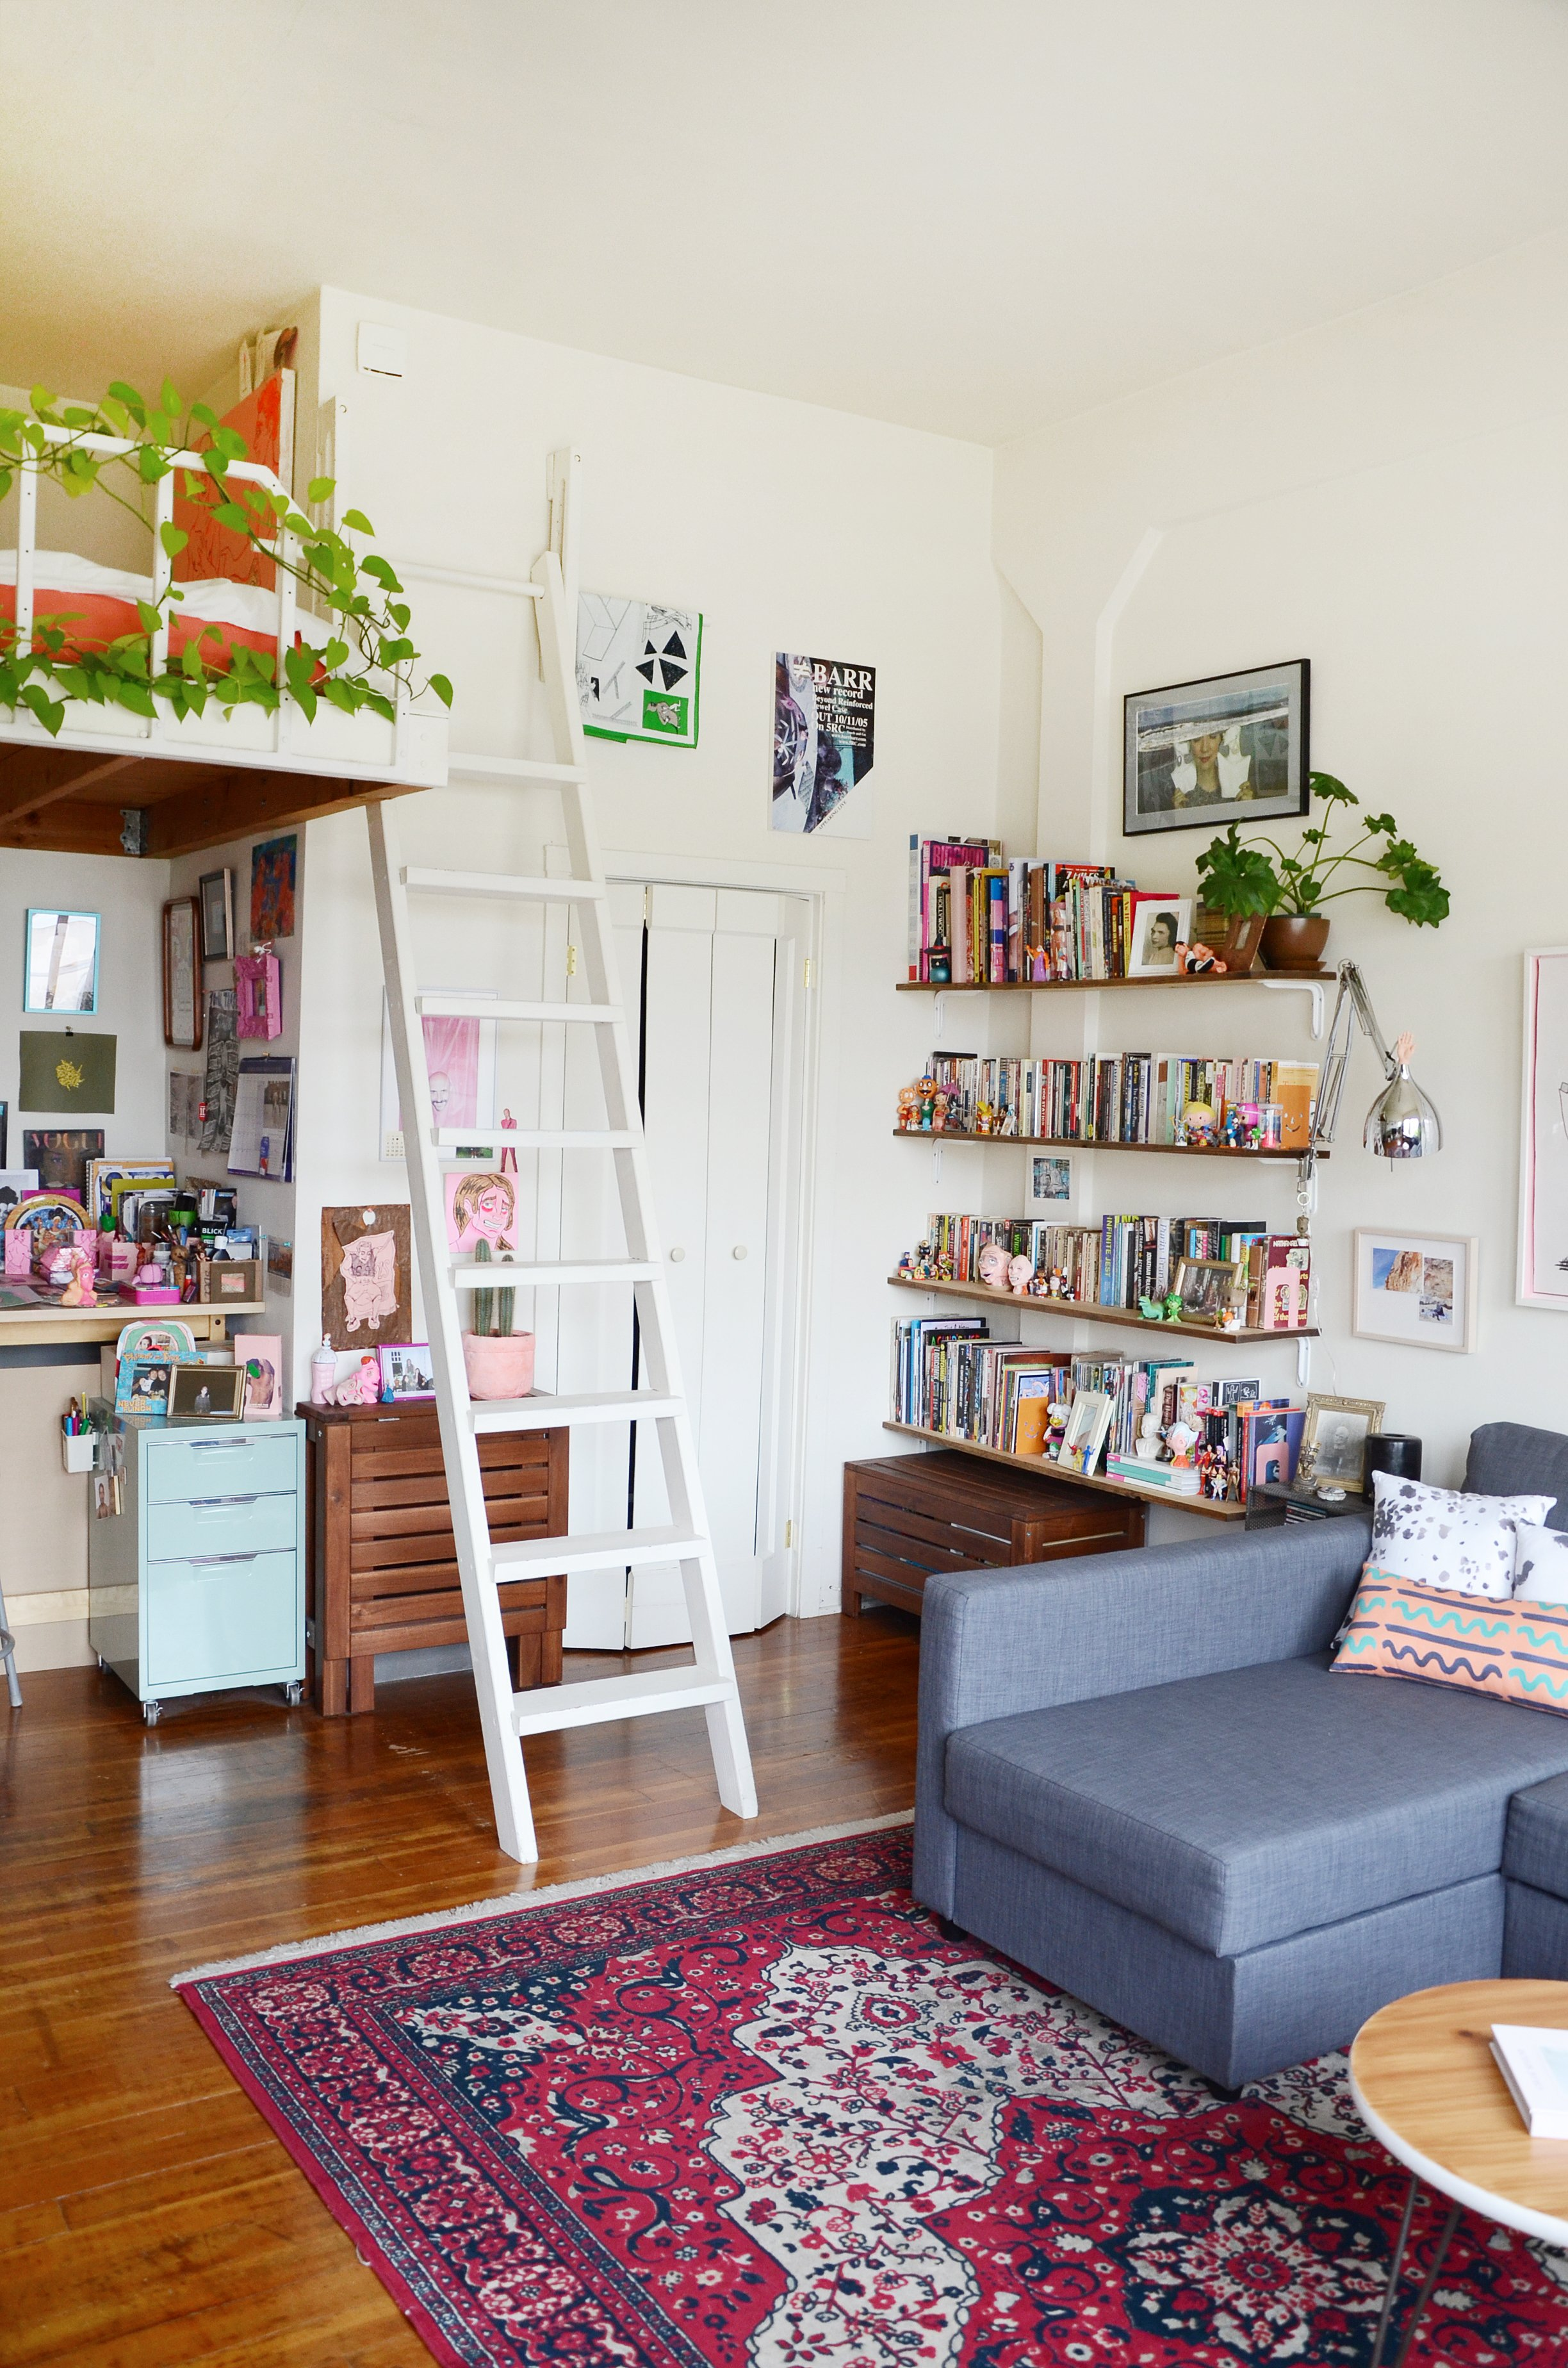 Small Space Ideas From A 300 Square Foot Studio Apartment Therapy